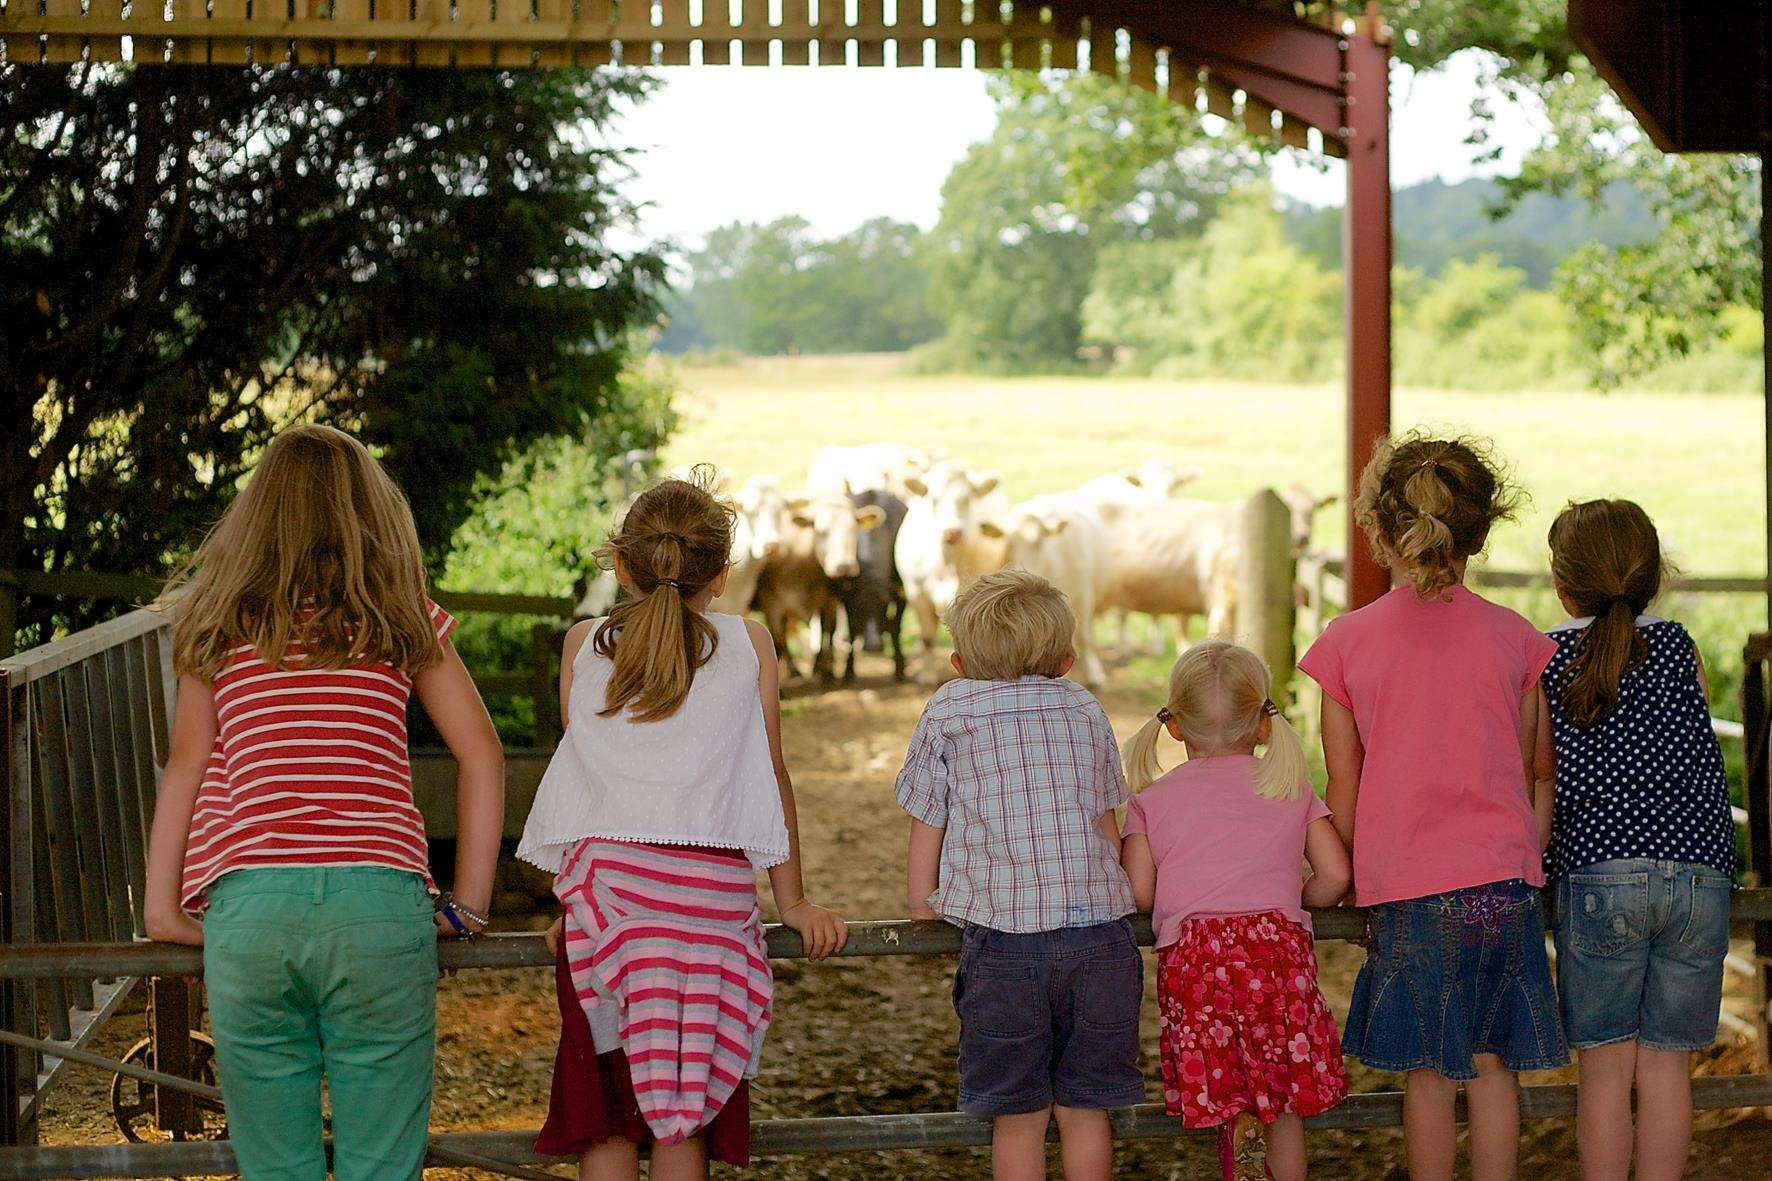 Learn more about life on a farm during Open Farm Sunday